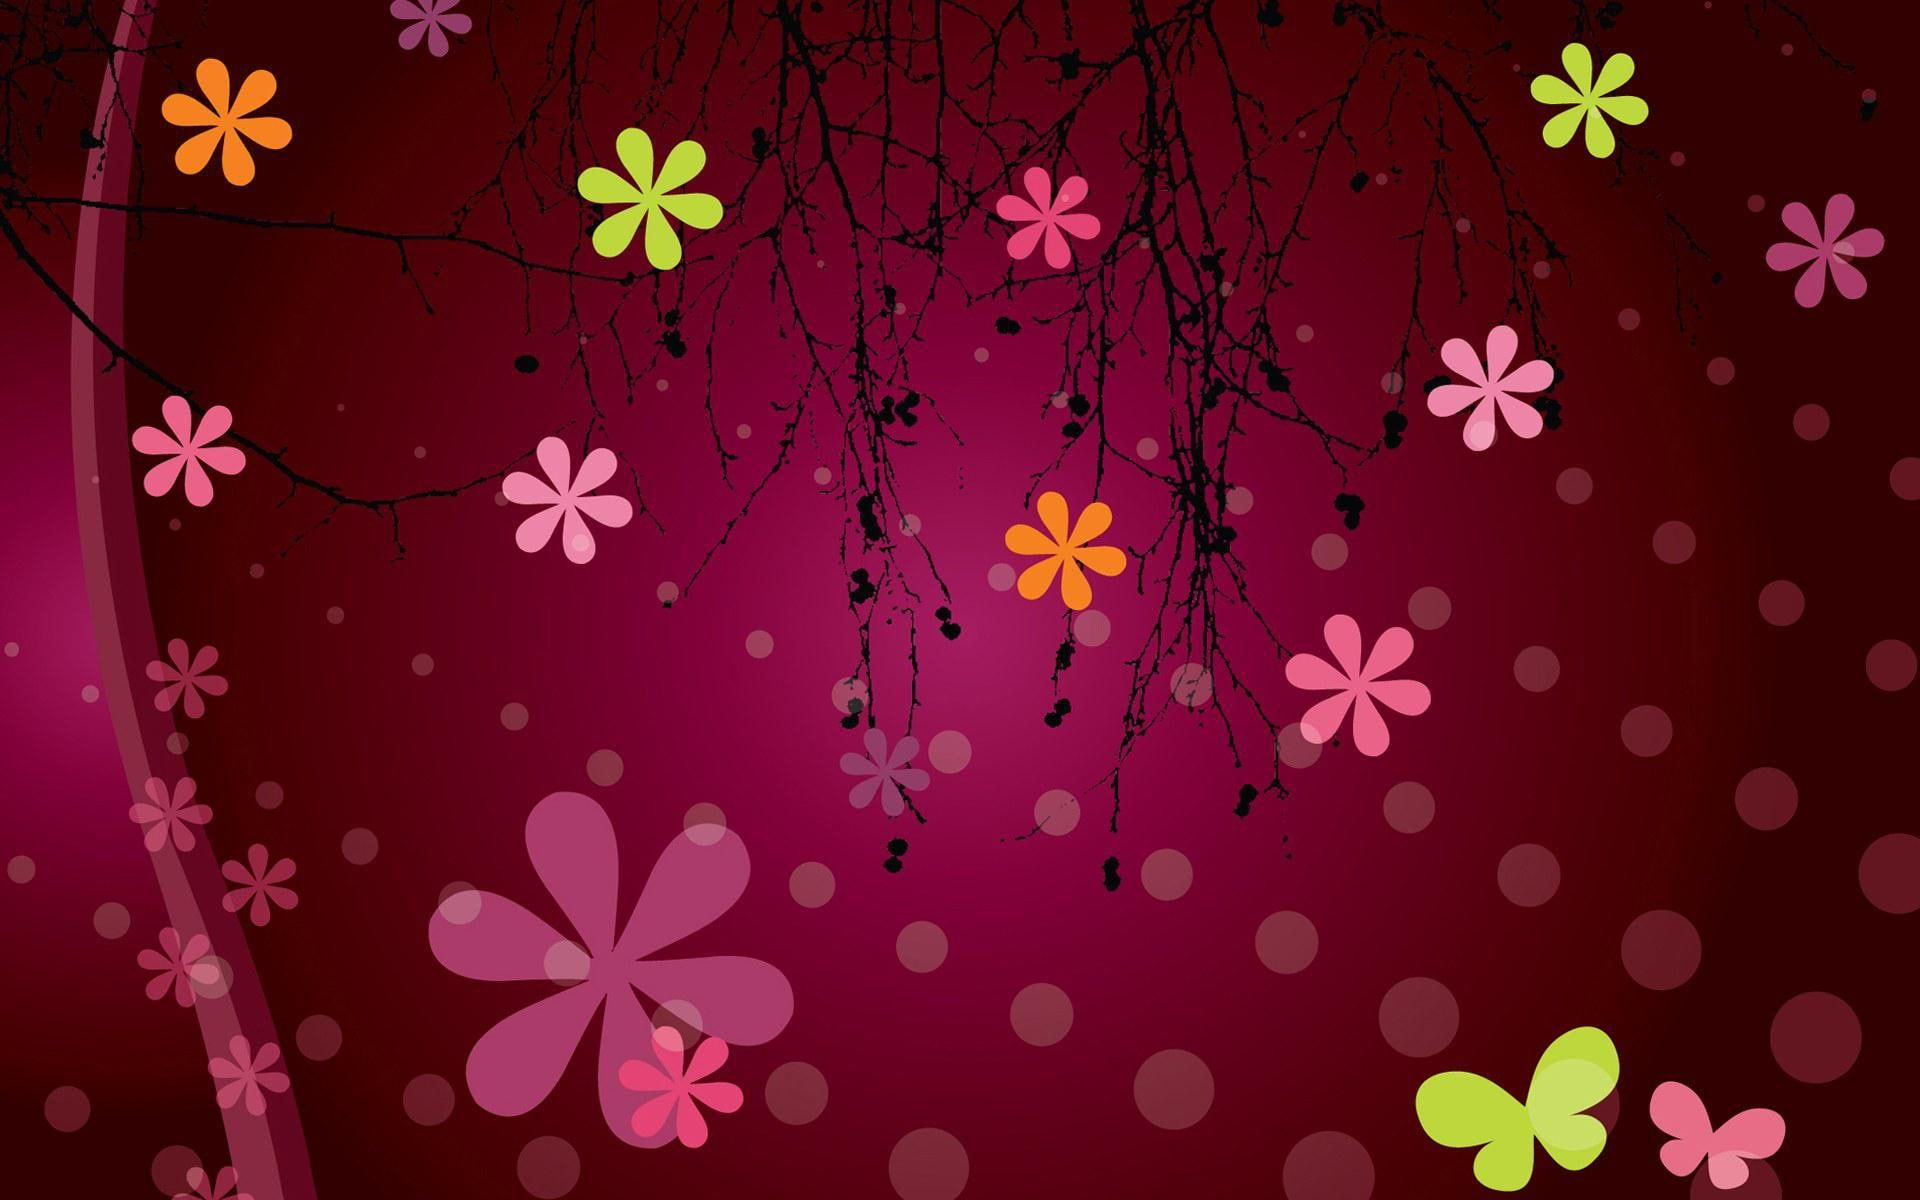 Girly Wallpaper Girly Abstract Other Hd Art Flower Background Images Vector Flowers Screen Savers Wallpapers